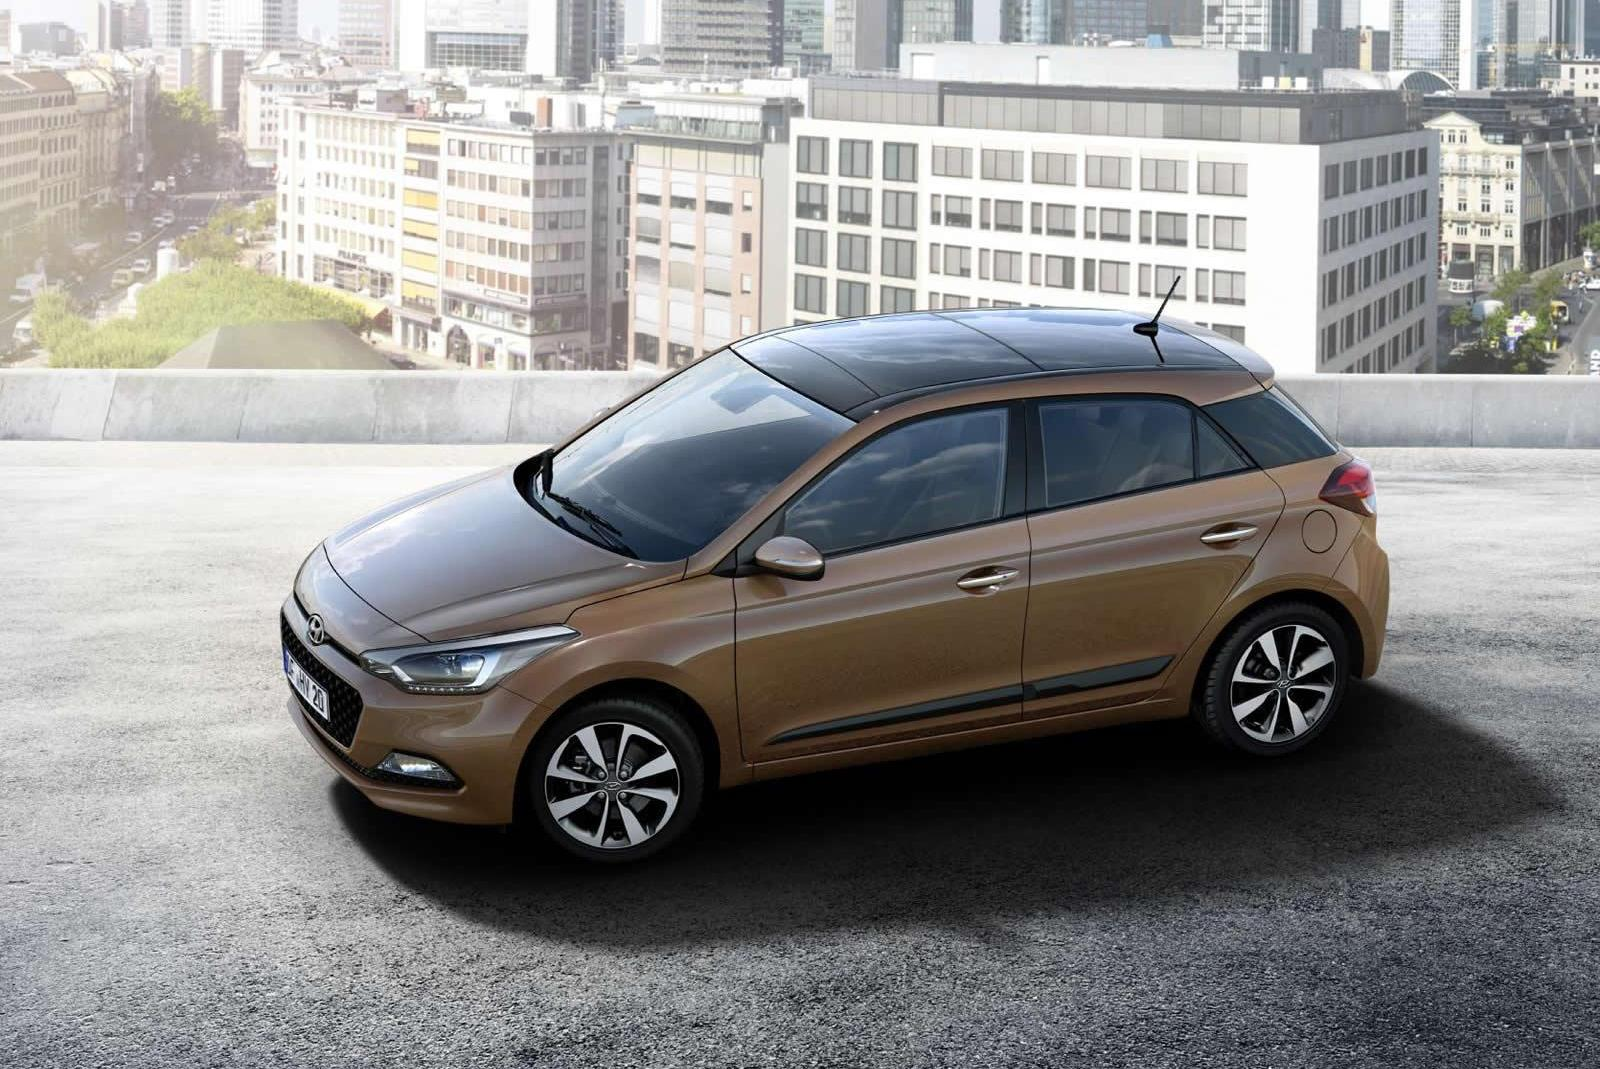 2015 hyundai i20 officially unveiled turkeycarblog. Black Bedroom Furniture Sets. Home Design Ideas